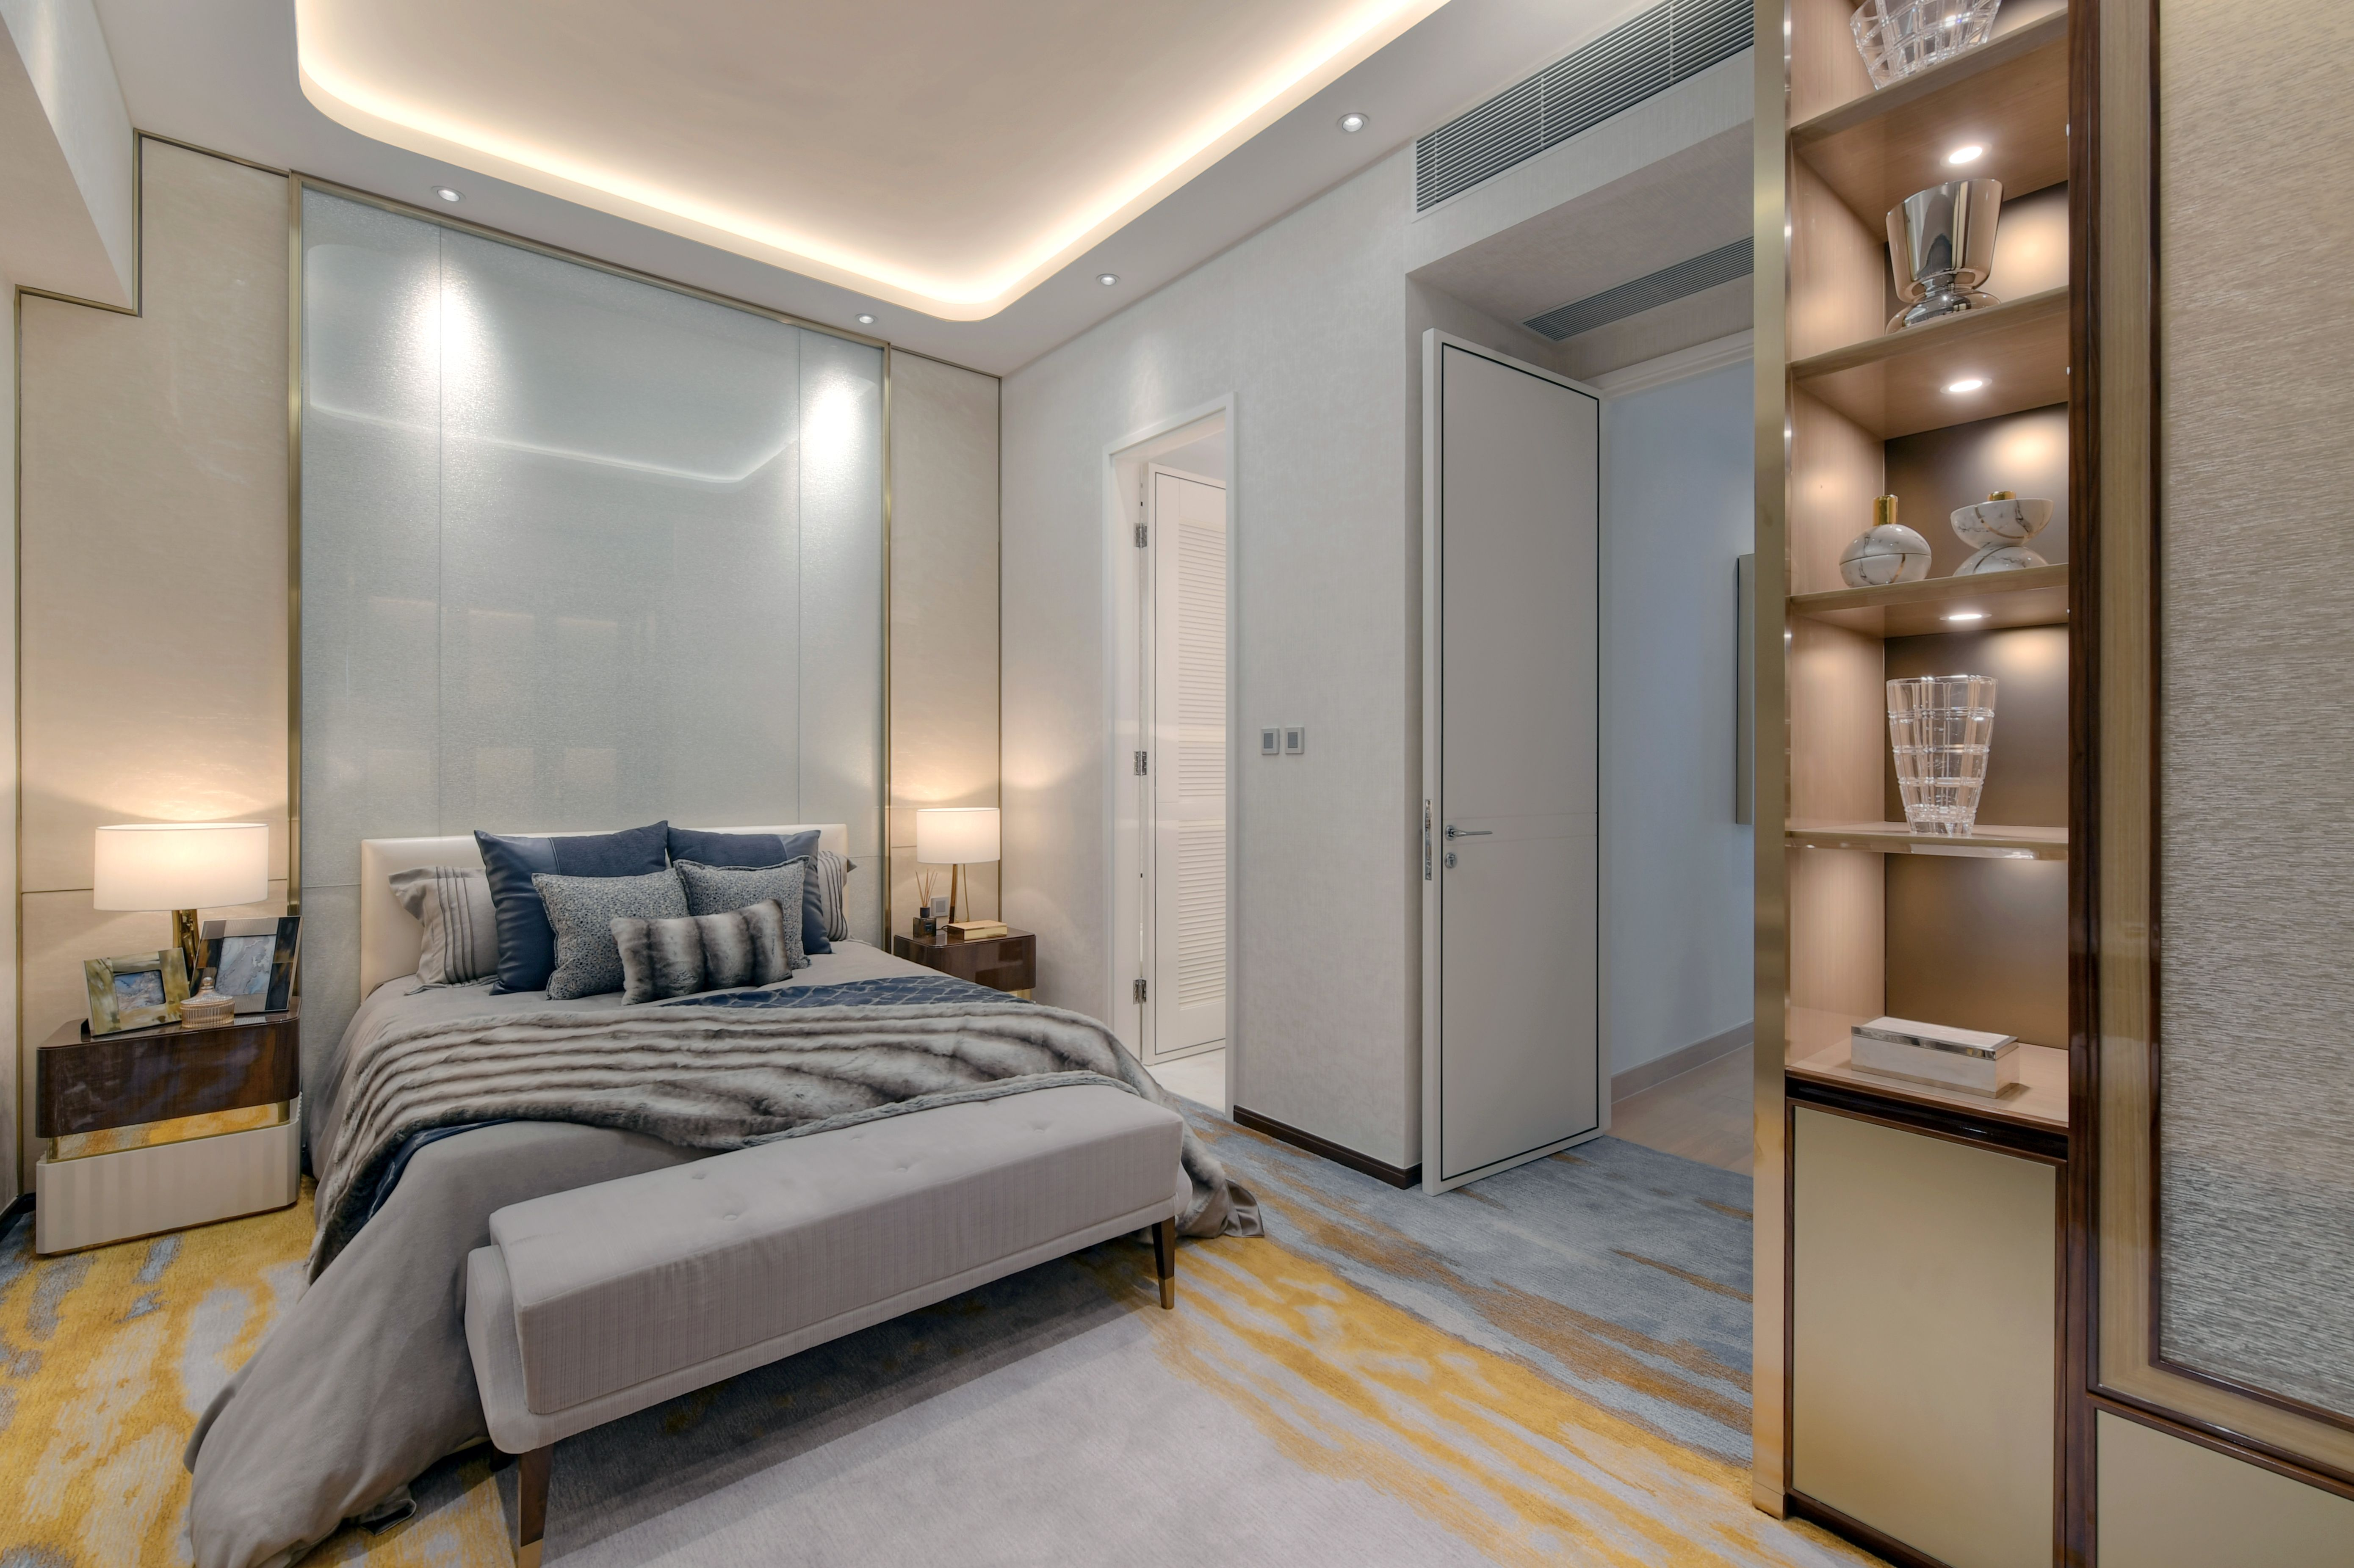 Capri Interior Design And Ing Out Works For Show House Fusiondesignltd Hongkong Interiordesign Ingout Showhouse Planning Decor Styling